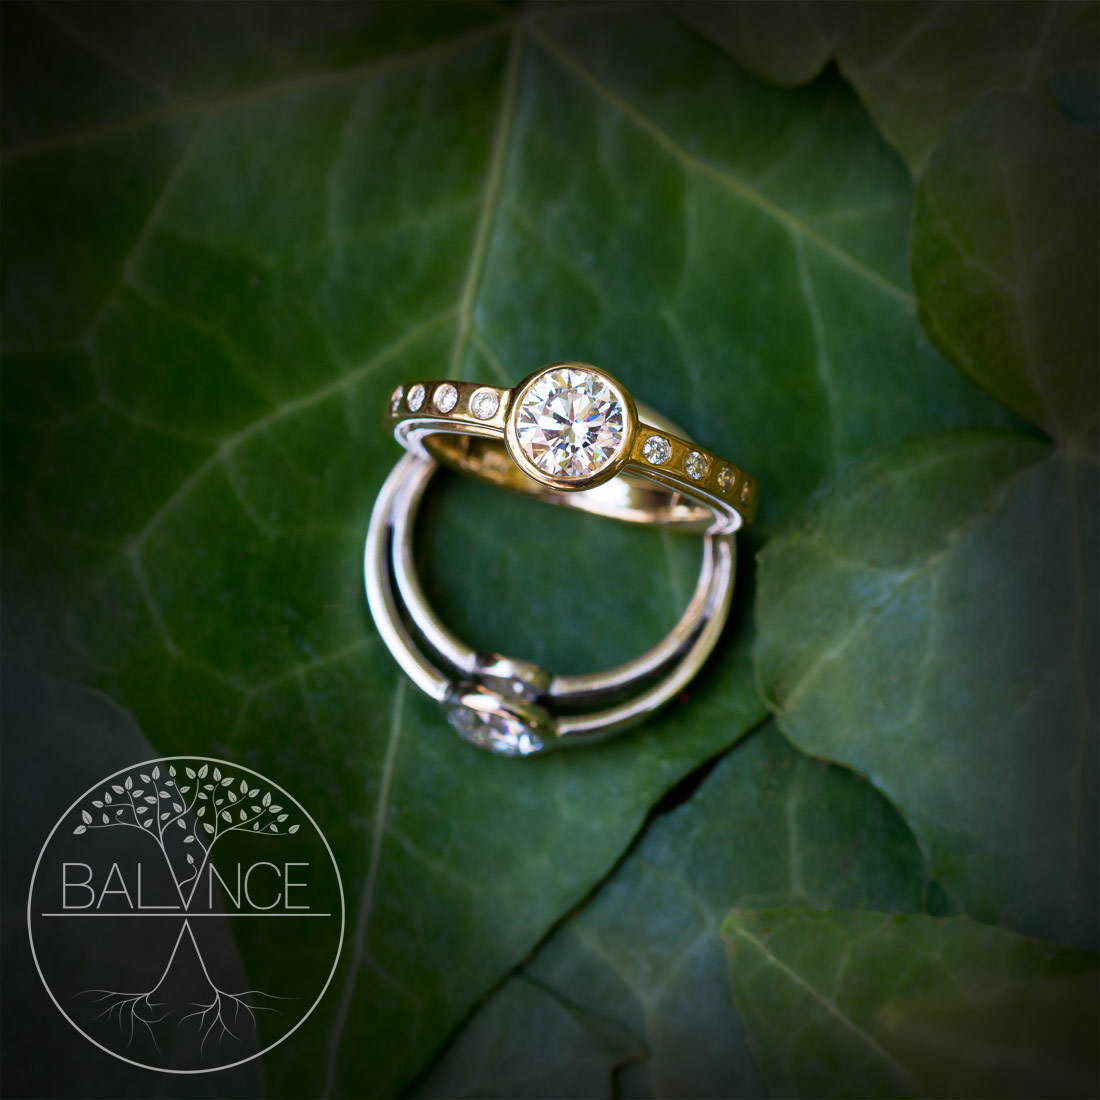 new false scale sustainable upscale lebrusan marry arabel ethical crop engagement ethics rings article and beautiful wedding by bridal subsampling design